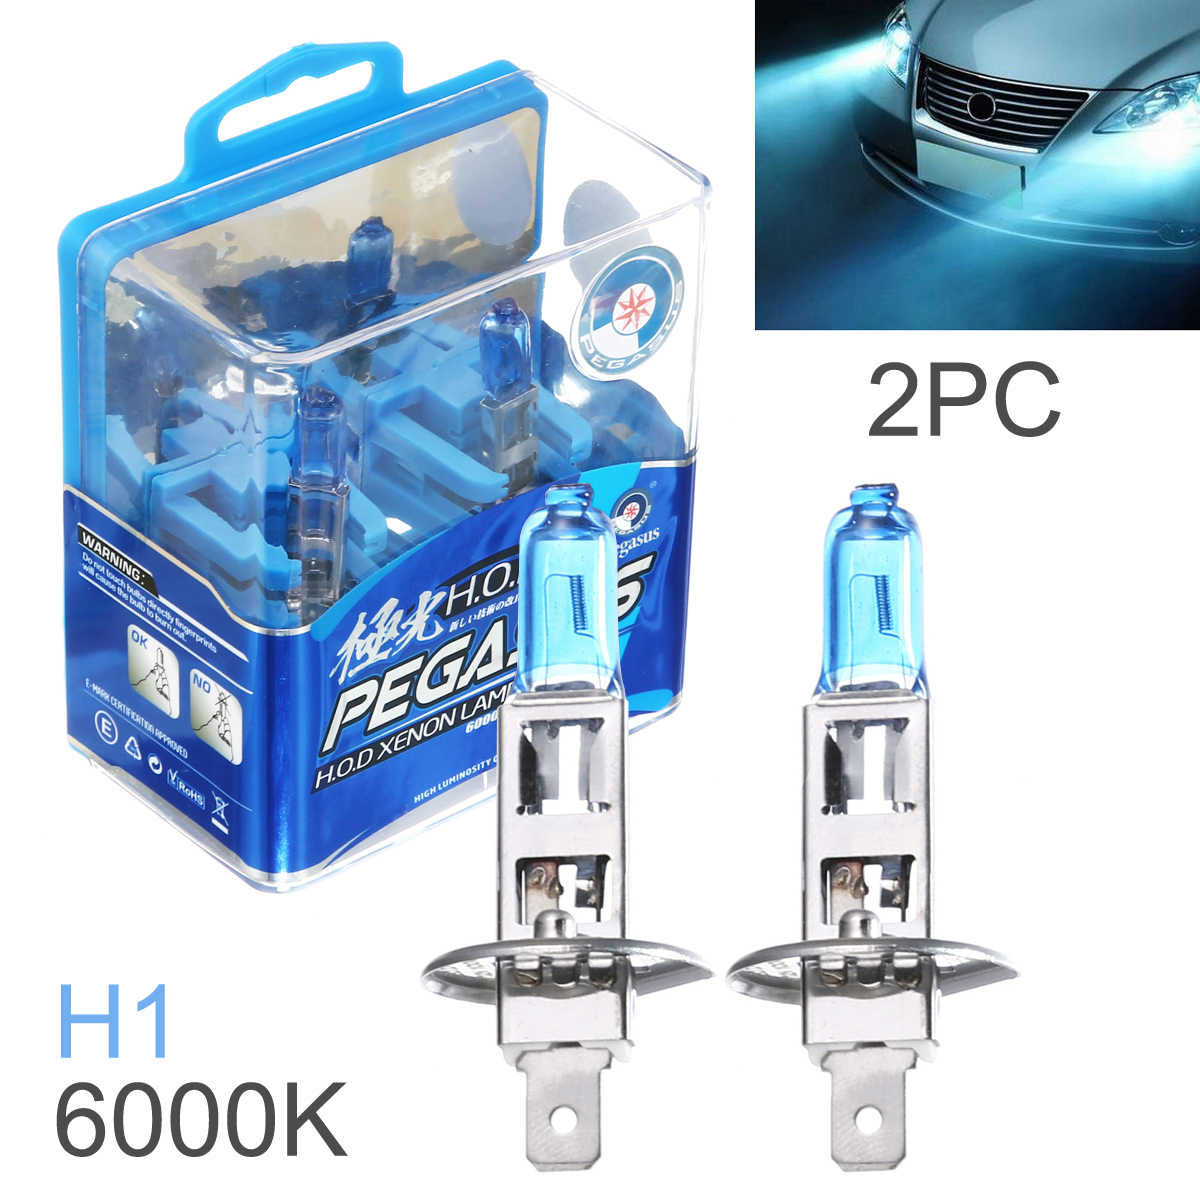 2Pcs H1 White Light Car HOD Xenon Halogen Lamp 100W Super Bright Auto Front Headlight Fog Bulb Lights